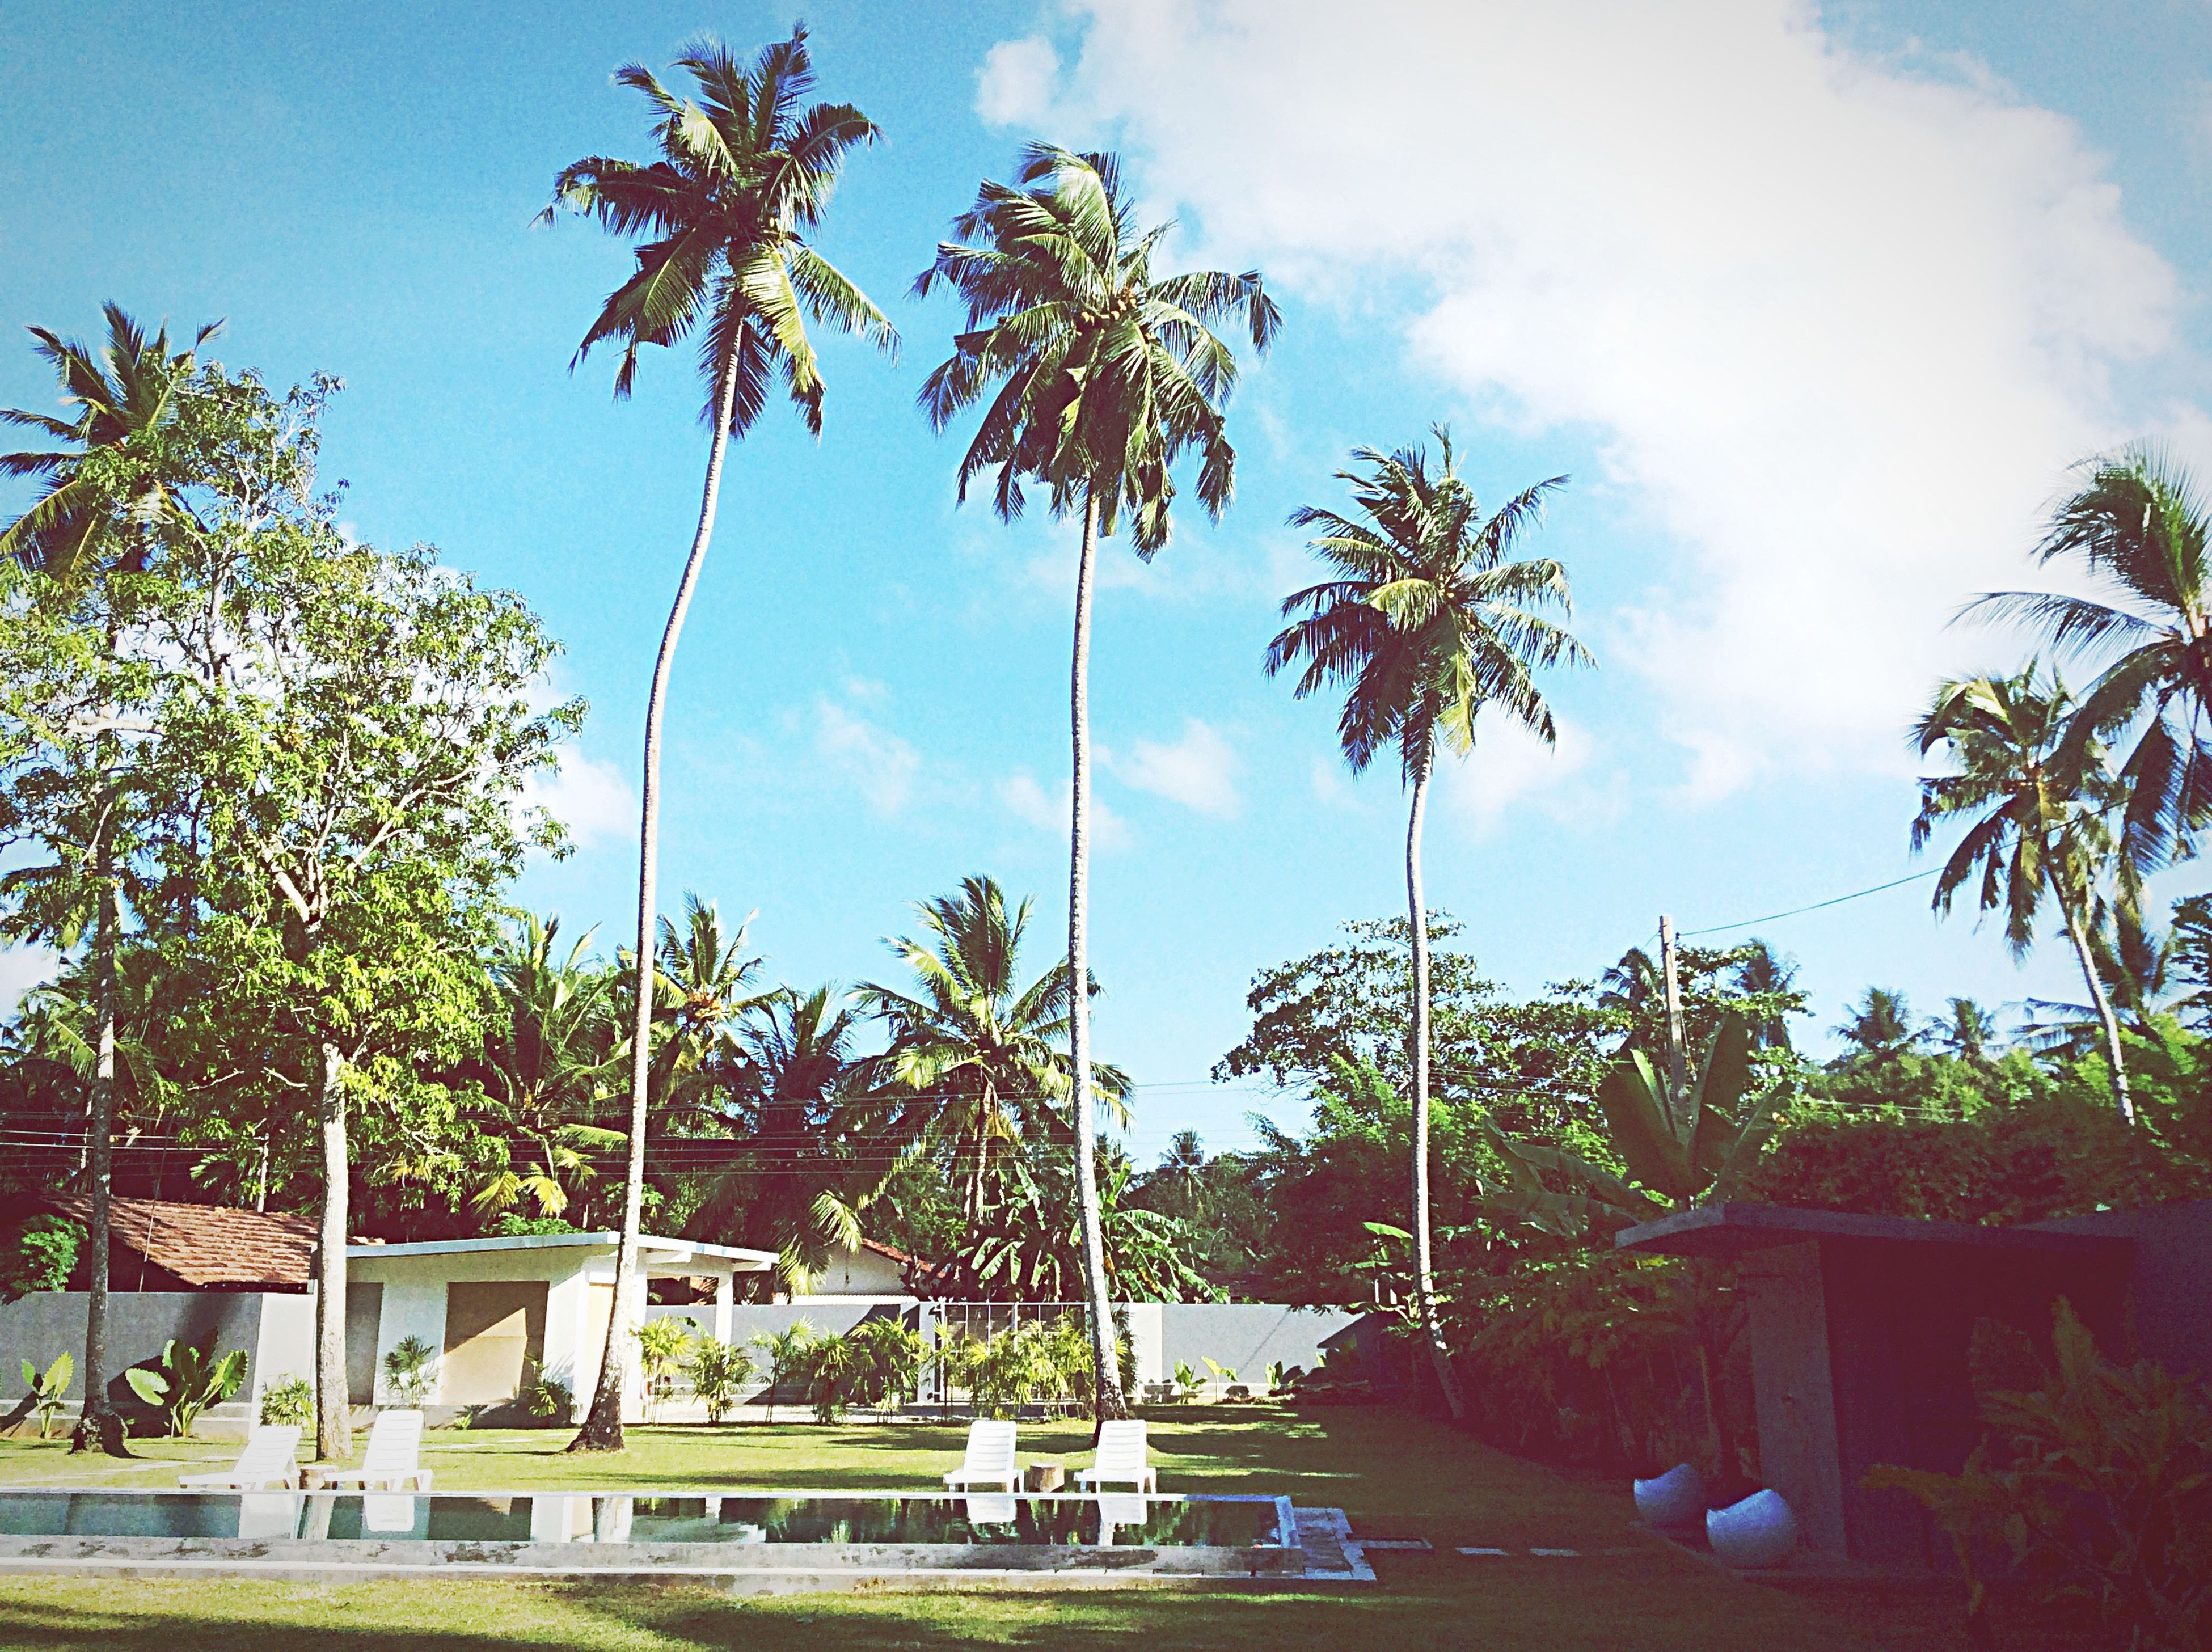 tree, sky, palm tree, cloud - sky, growth, cloud, cloudy, nature, built structure, tranquility, park - man made space, water, sunlight, building exterior, day, outdoors, architecture, no people, beauty in nature, scenics